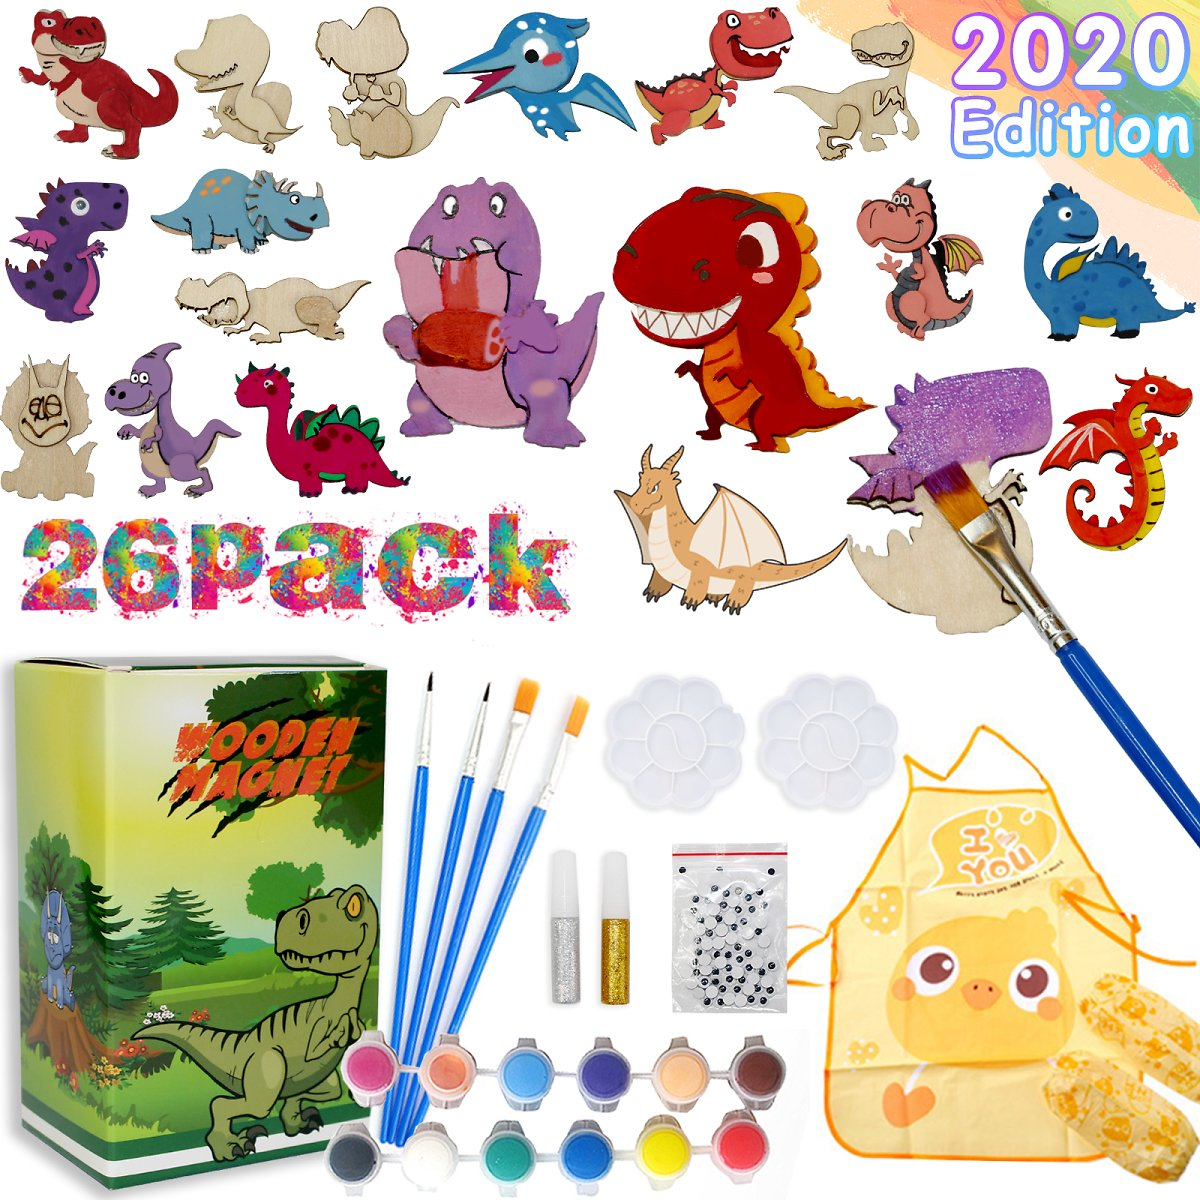 50% Promotional Discount Craft Kit and Art Set for Kids, Dinosaur Wood Painting